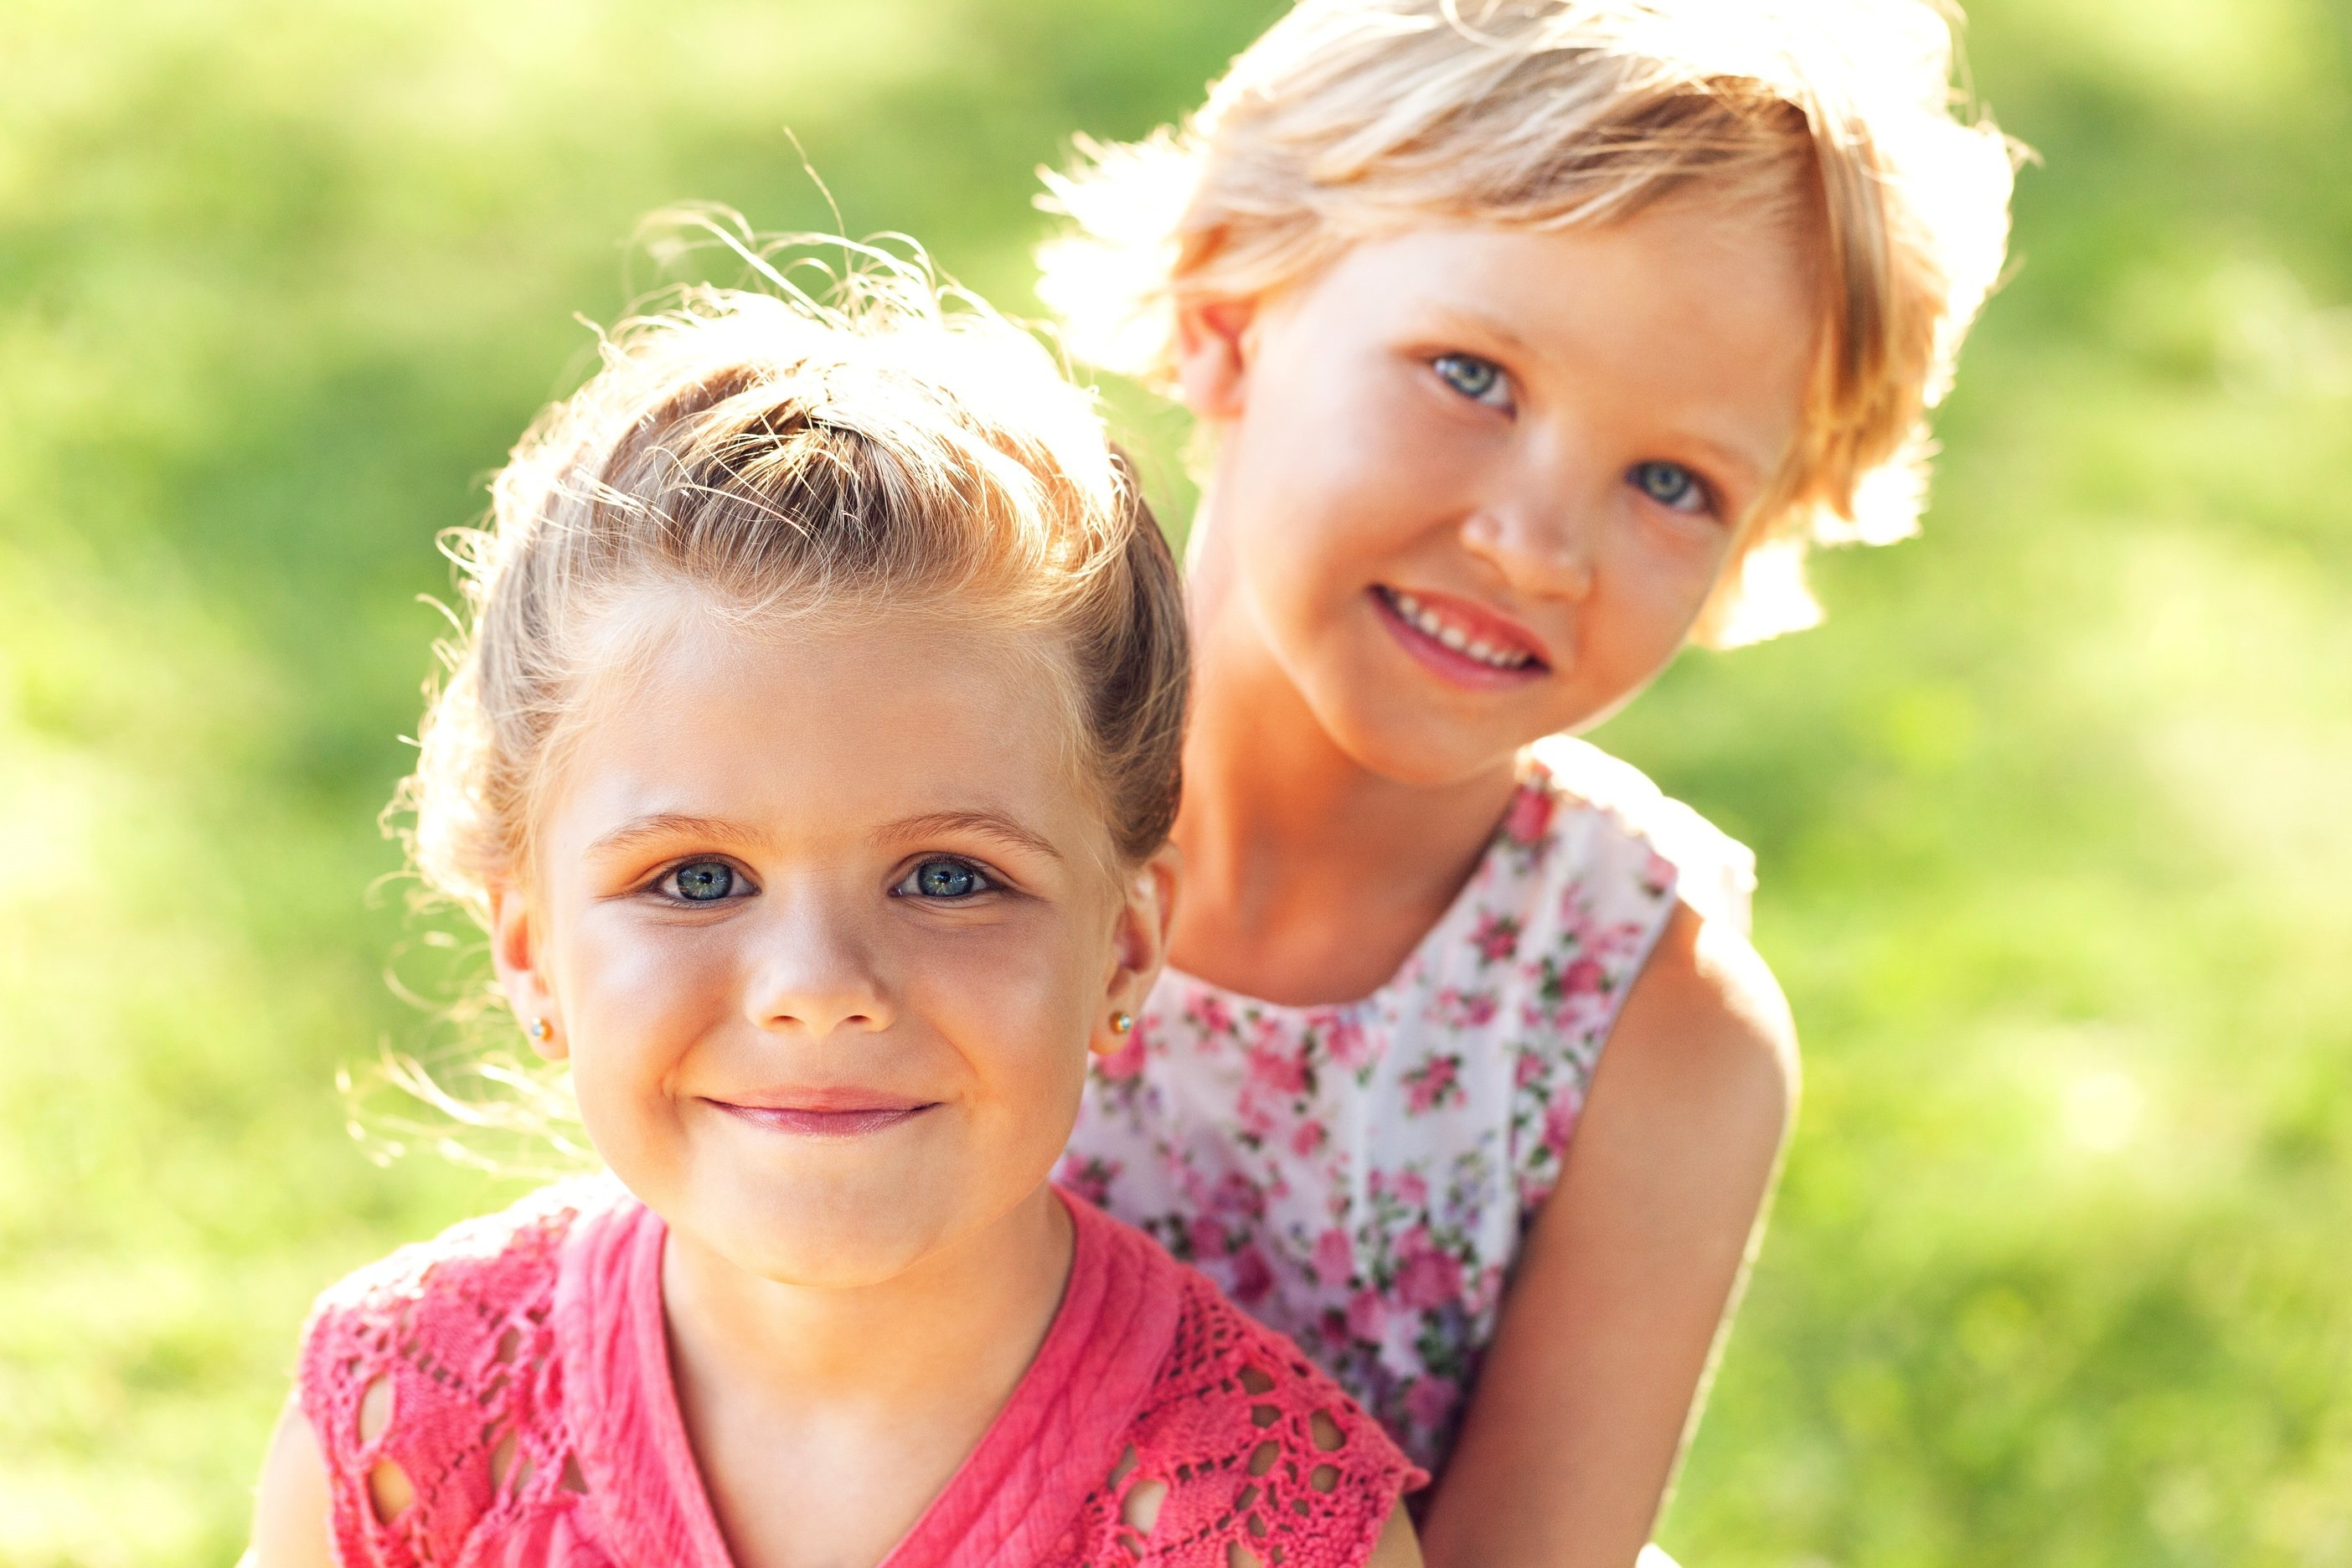 Are You Ready to Adopt? 4 Questions to Ask Yourself